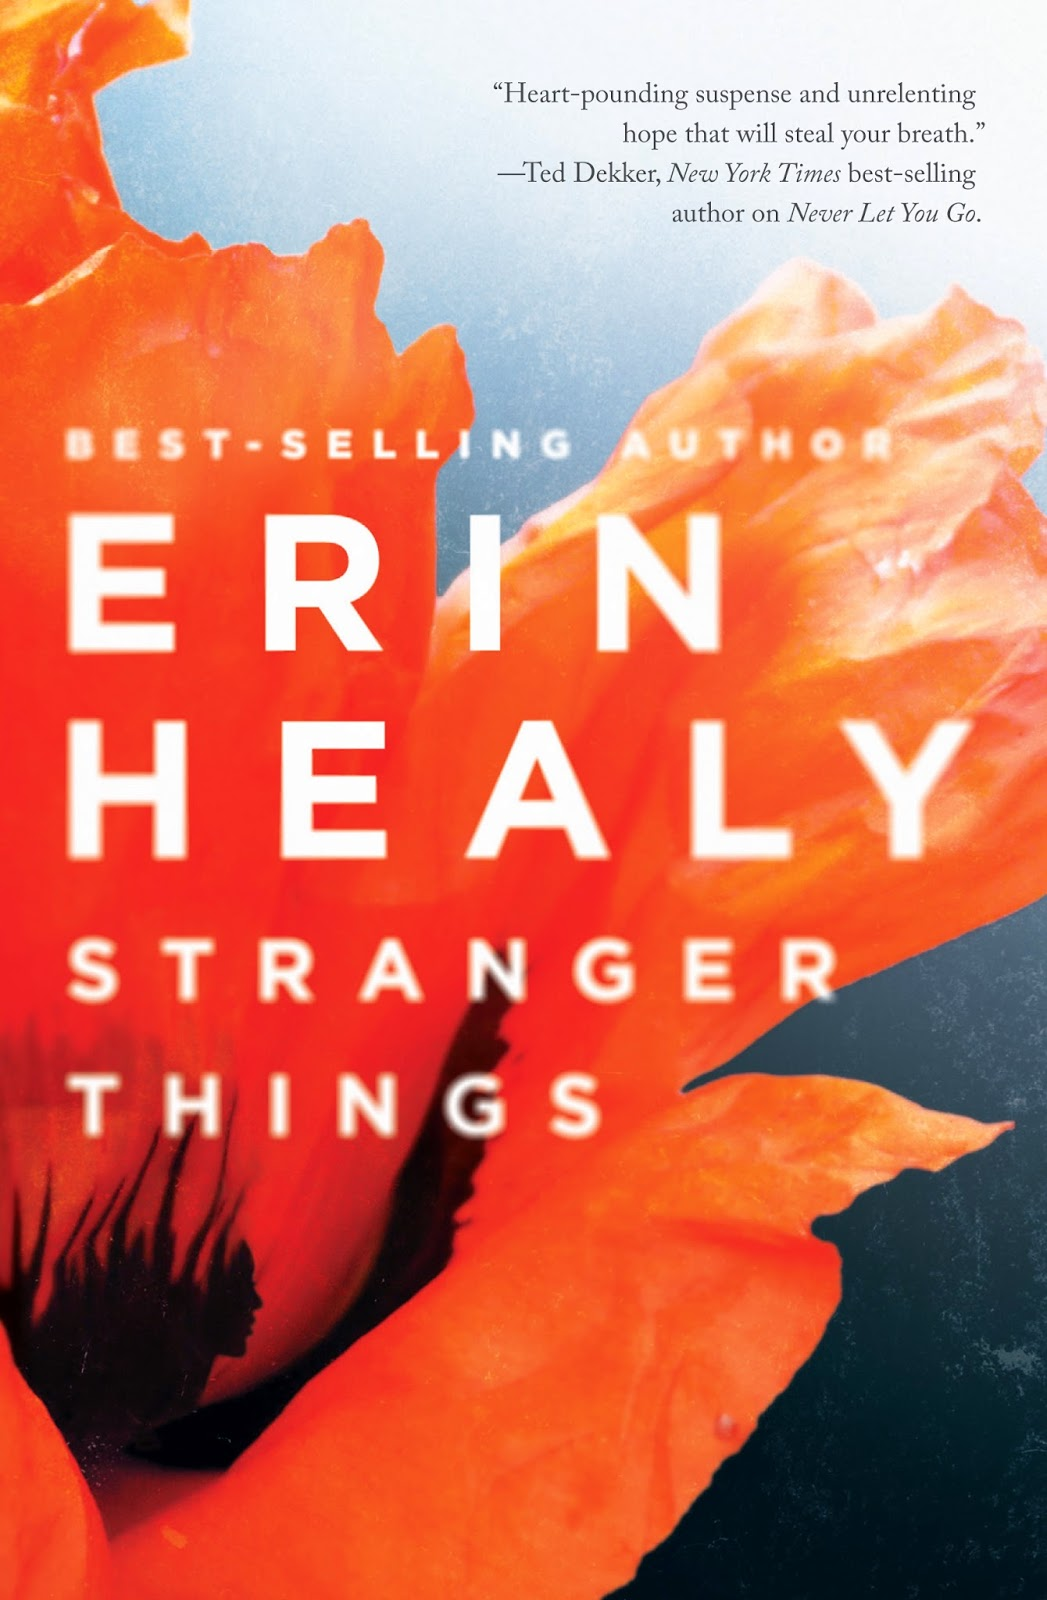 http://www.amazon.com/Stranger-Things-Erin-Healy/dp/1401689582/ref=sr_1_1?s=books&ie=UTF8&qid=1391034782&sr=1-1&keywords=stranger+things+by+erin+healy